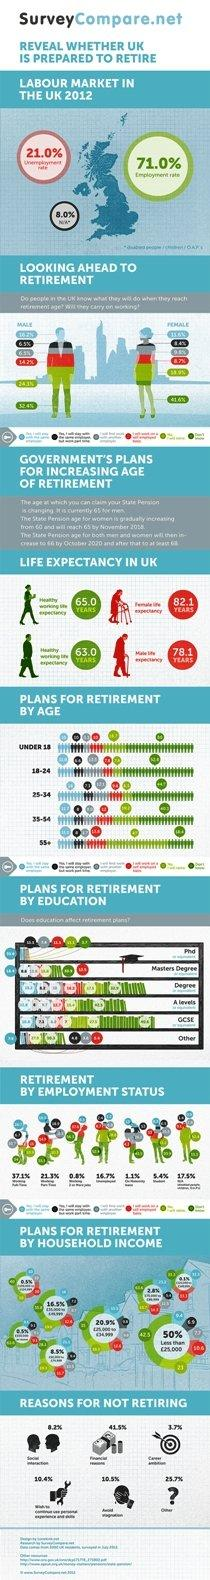 Is UK prepared to retire? #infographic